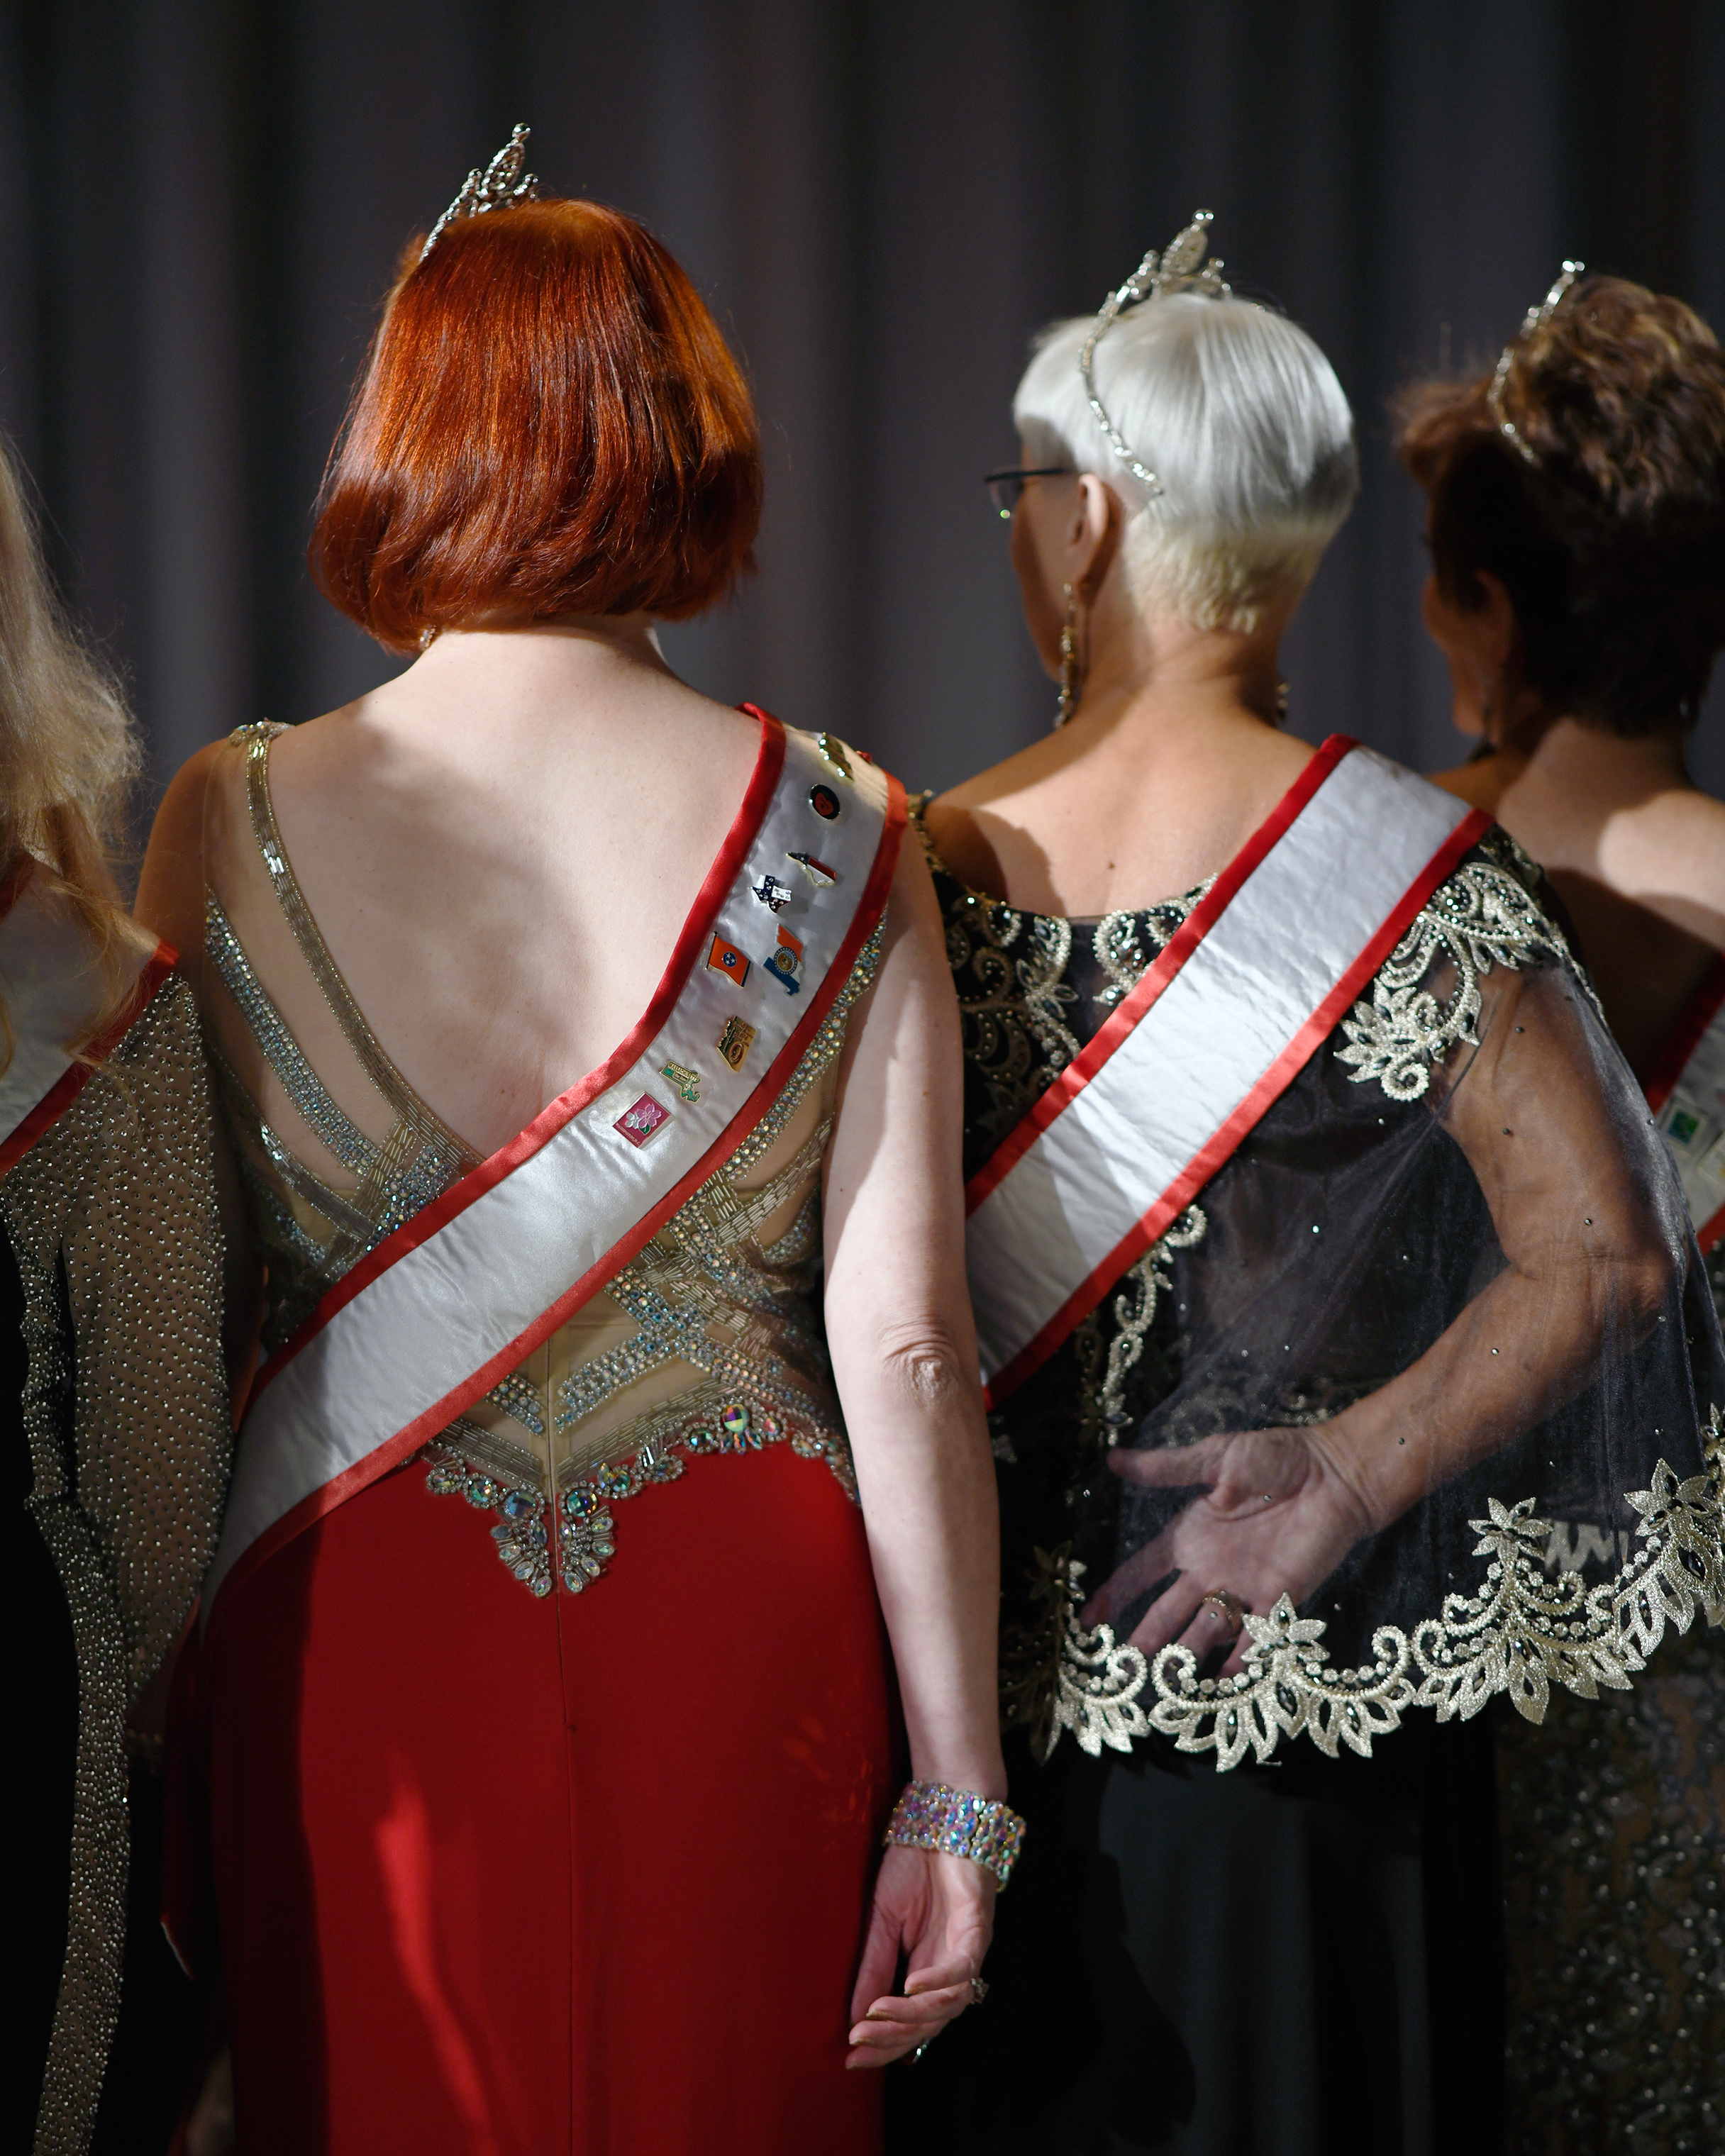 Thirty-nine women competed in the Ms. Senior America pageant in Atlantic City, N.J.